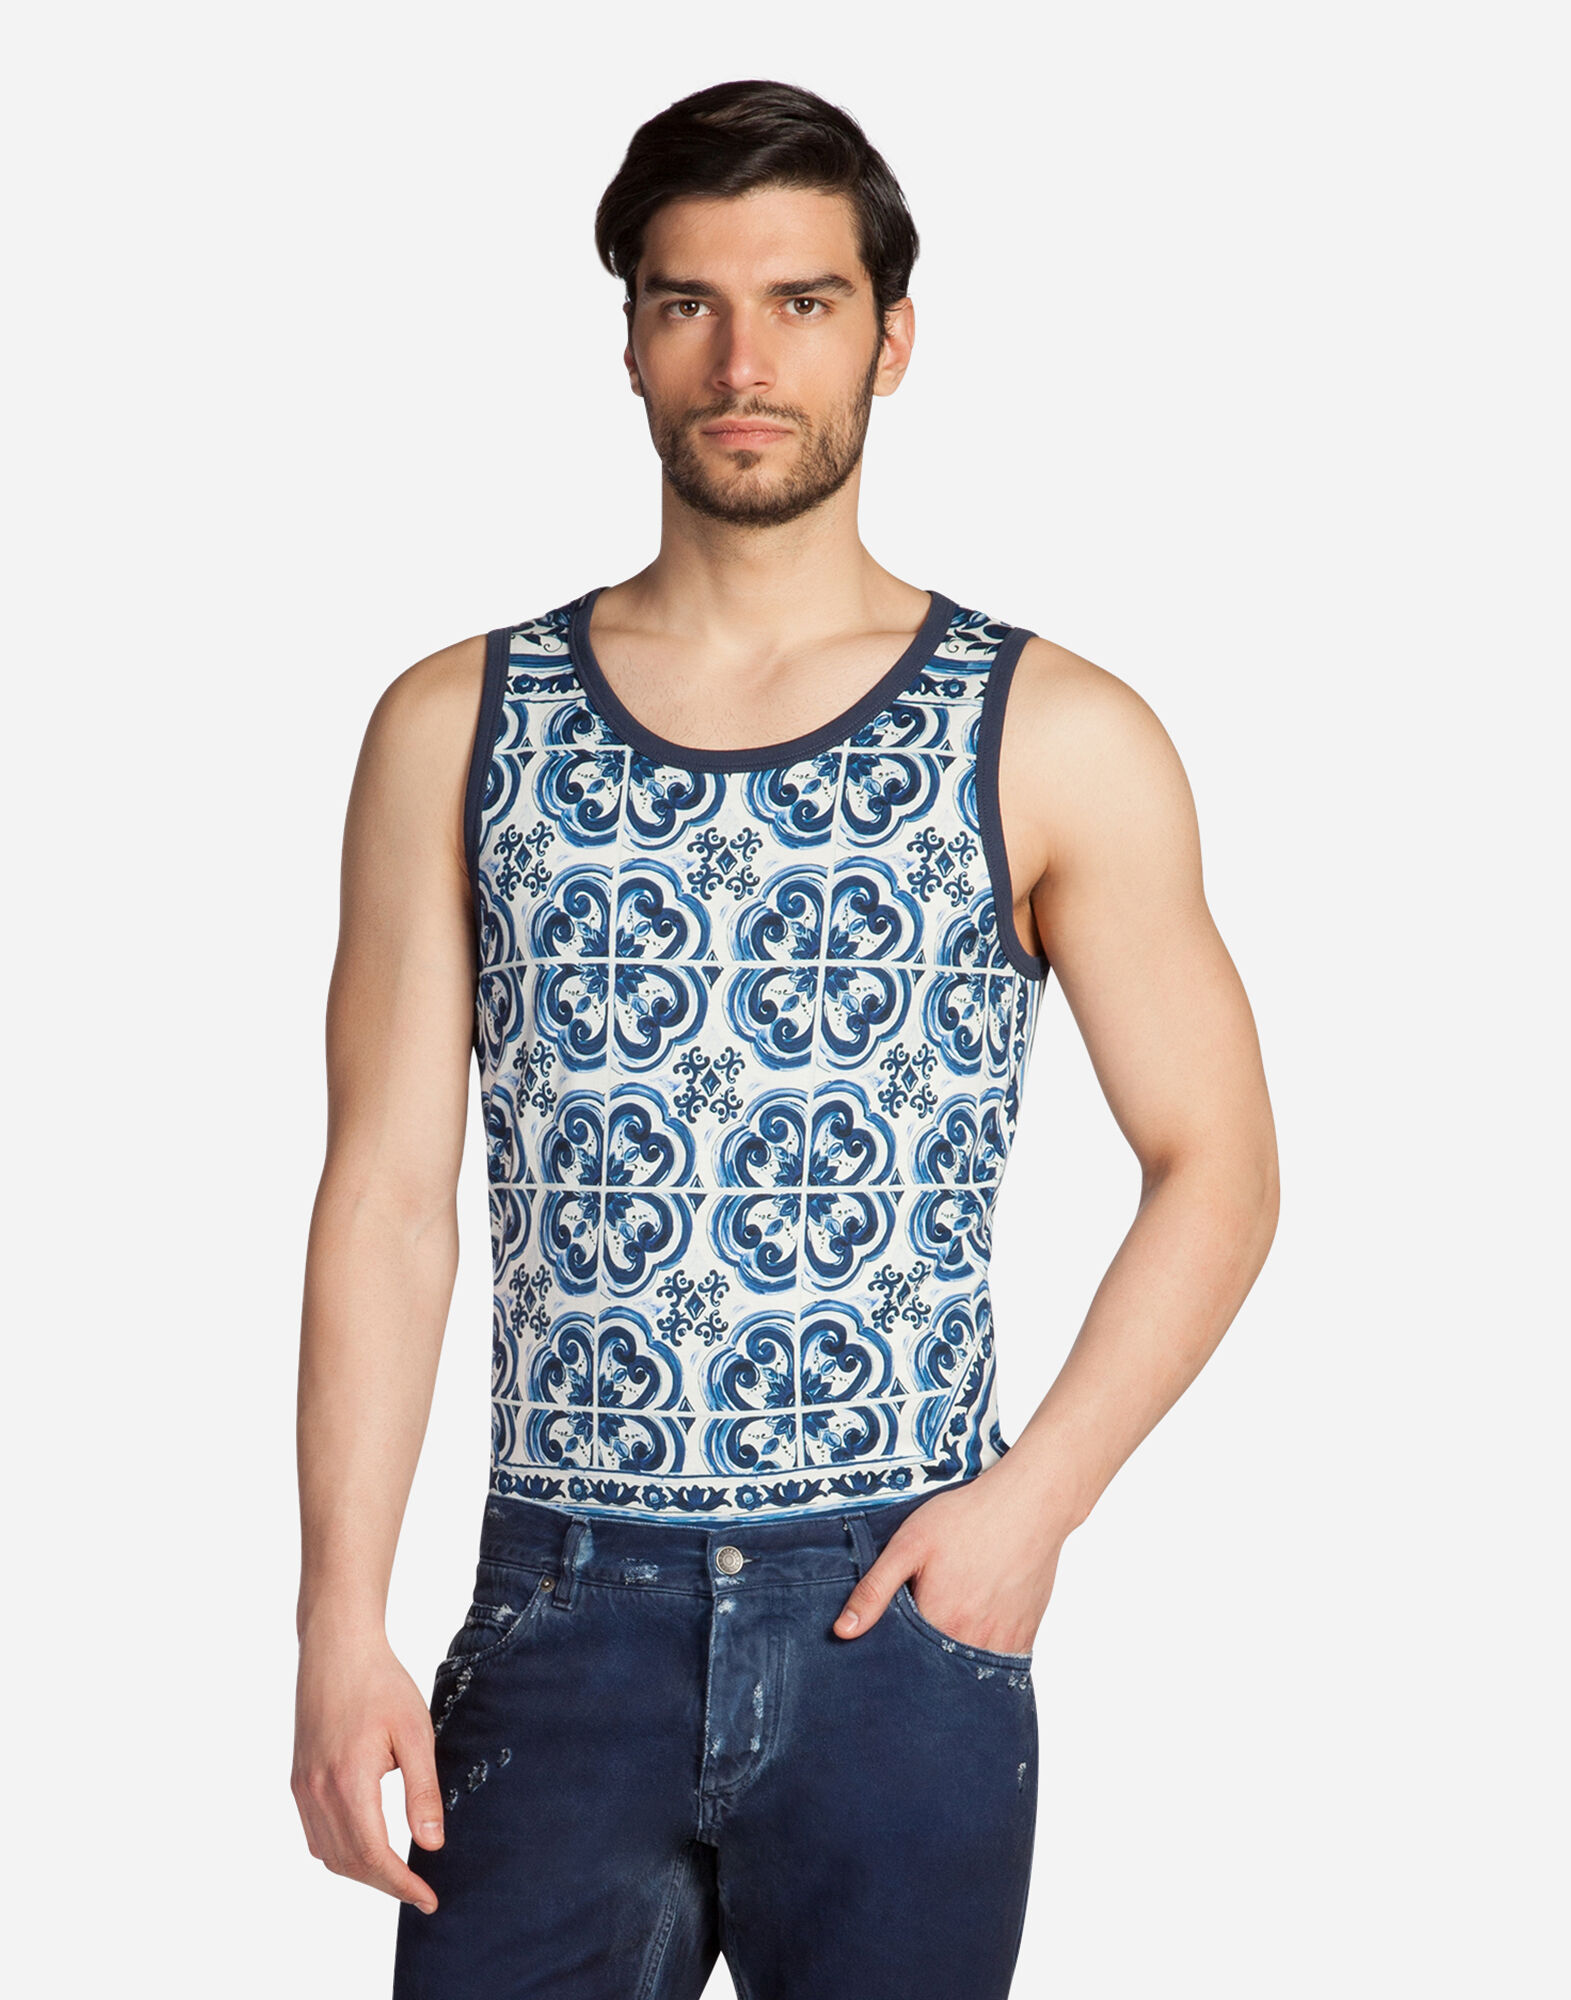 SLEEVELESS T-SHIRT IN PRINTED COTTON